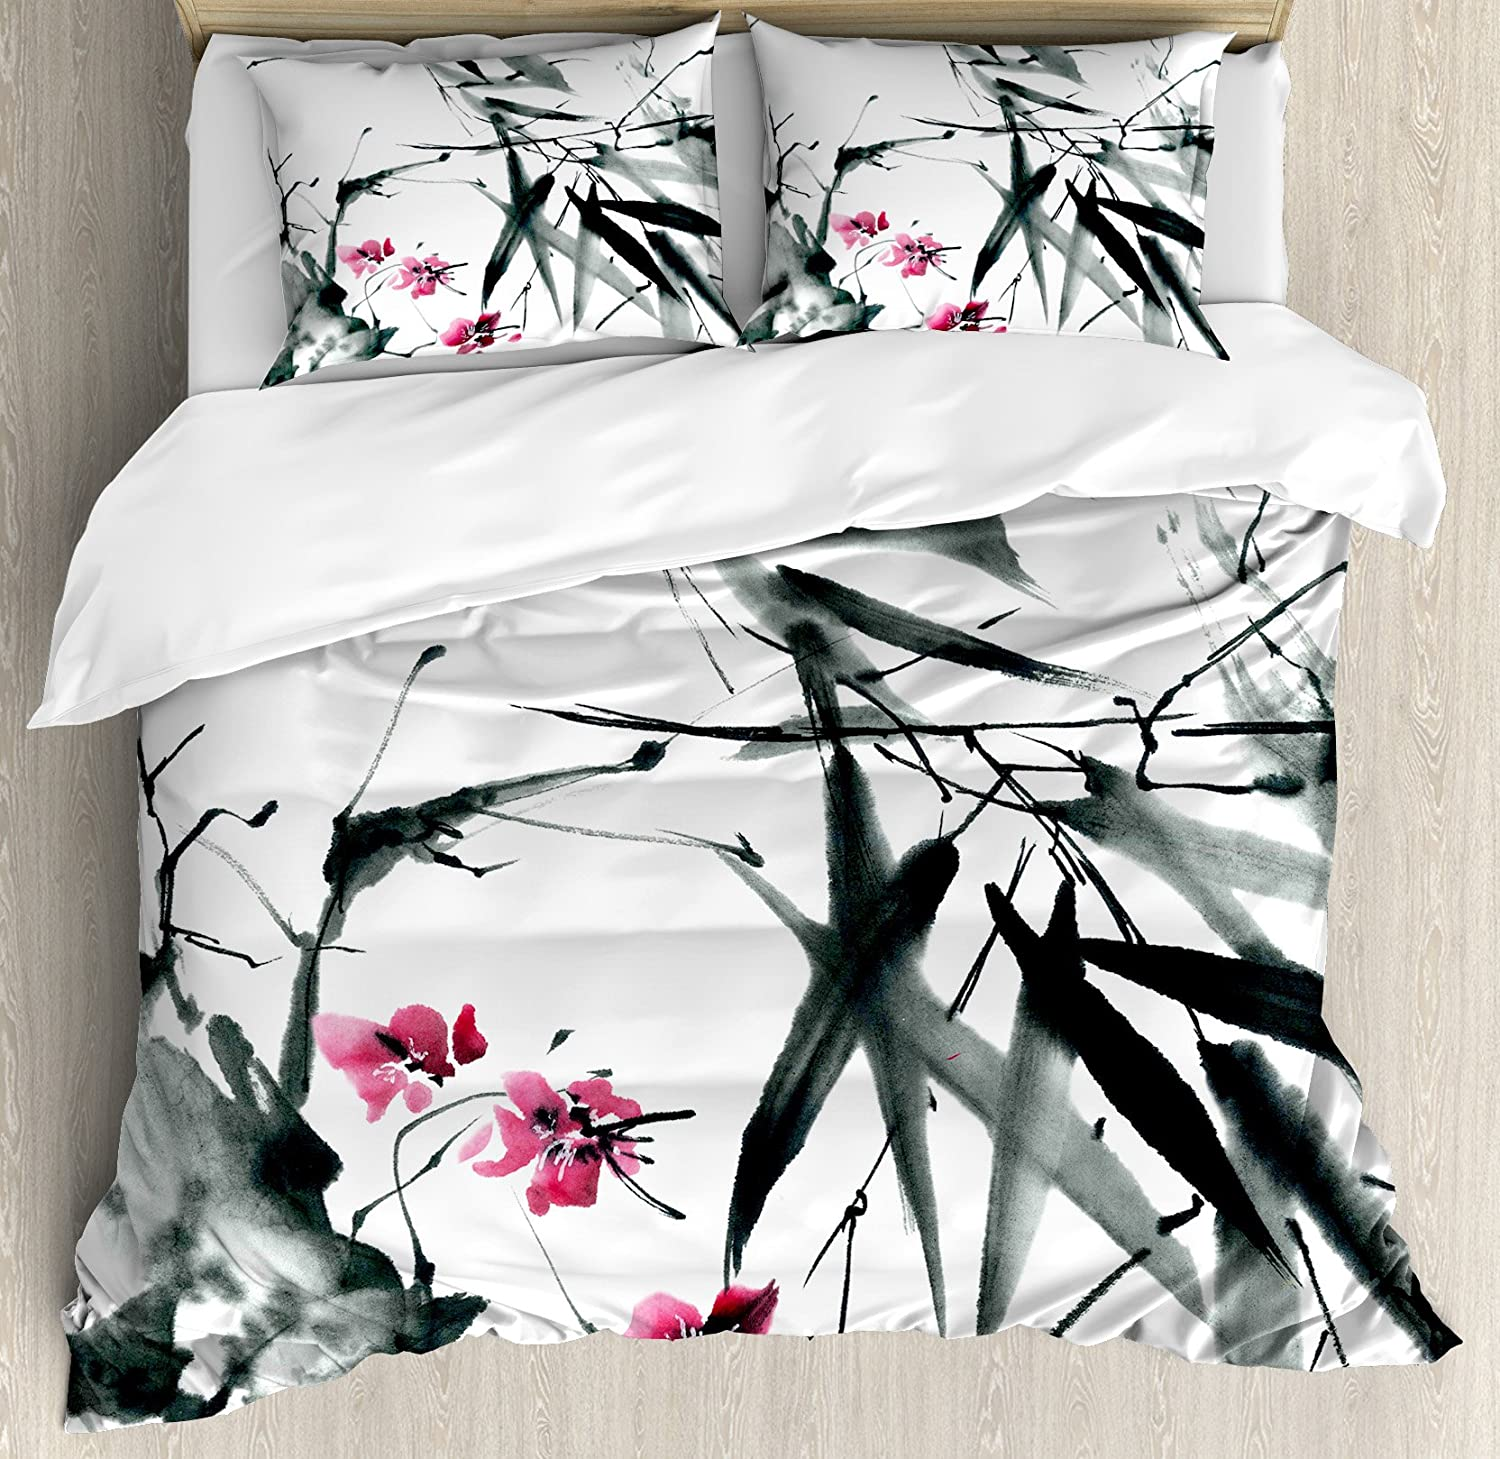 Ambesonne Japanese Duvet Cover Set, Natural Bamboo Stems Cherry Blossom Japanese Inspired Folk Print, Decorative 3 Piece Bedding Set with 2 Pillow Shams, Queen Size, Green Fuchsia